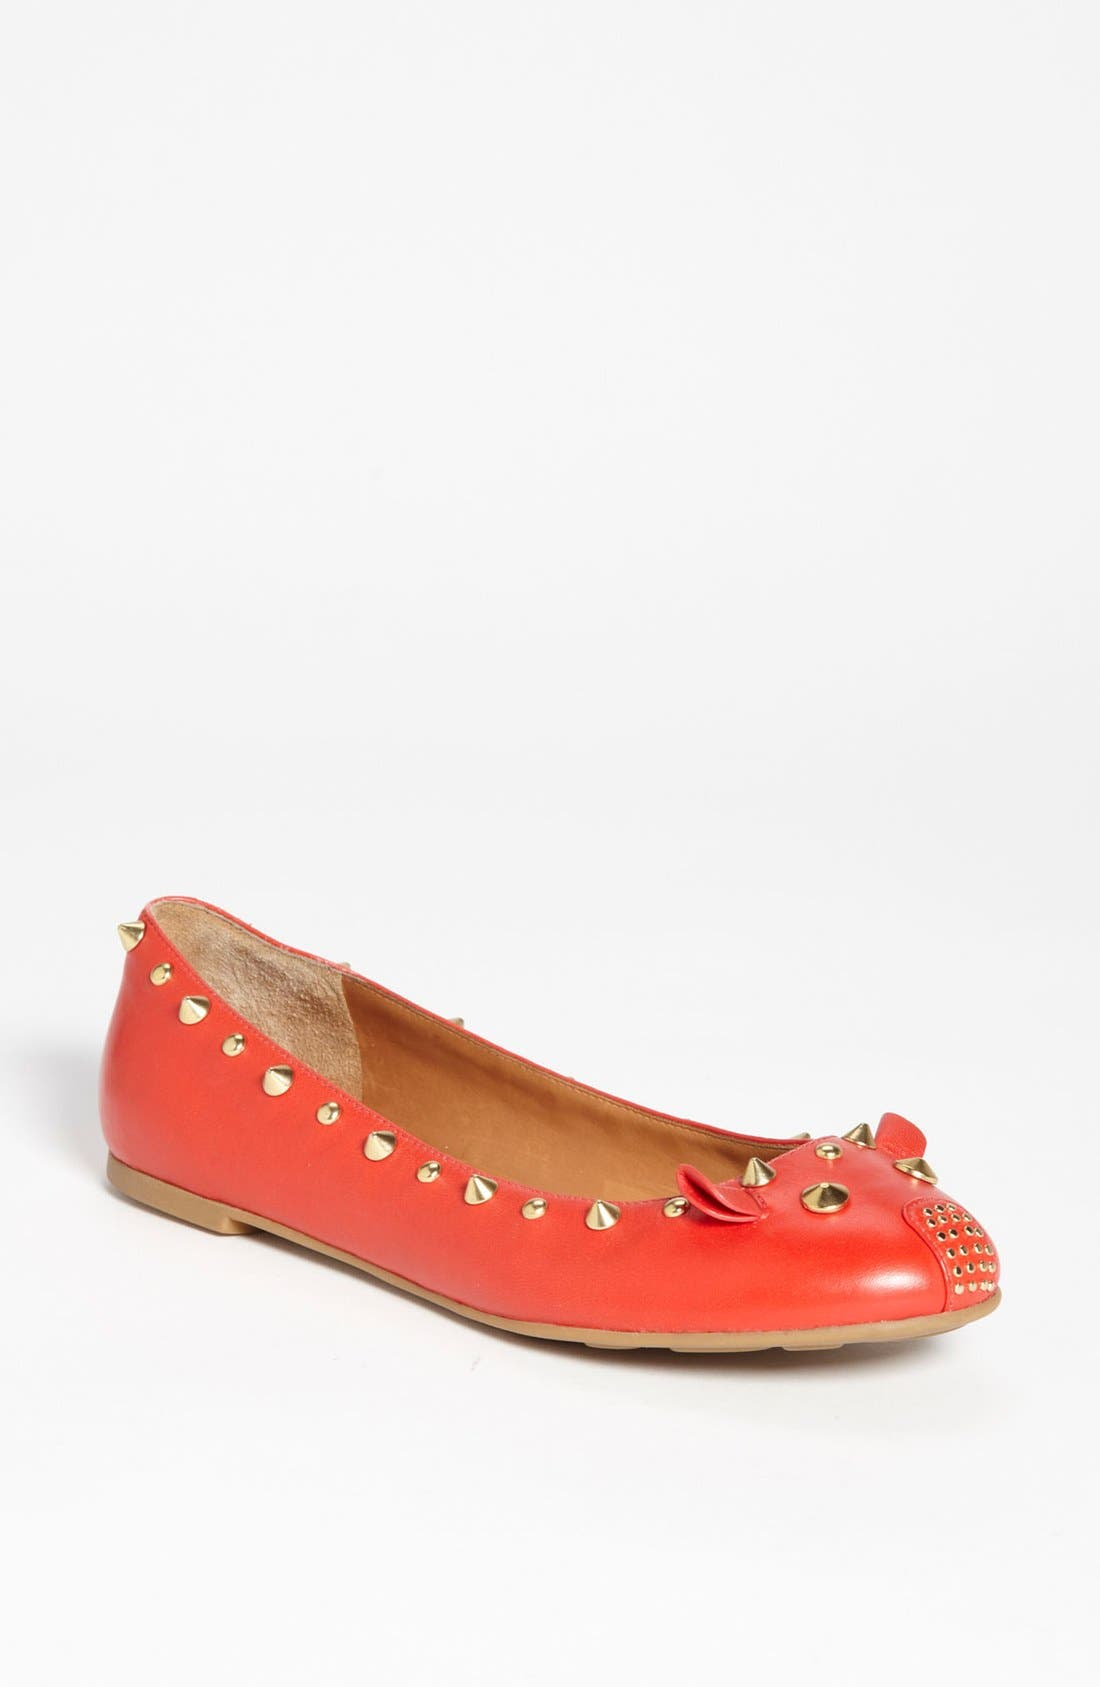 Main Image - MARC BY MARC JACOBS 'Mouse' Ballerina Flat